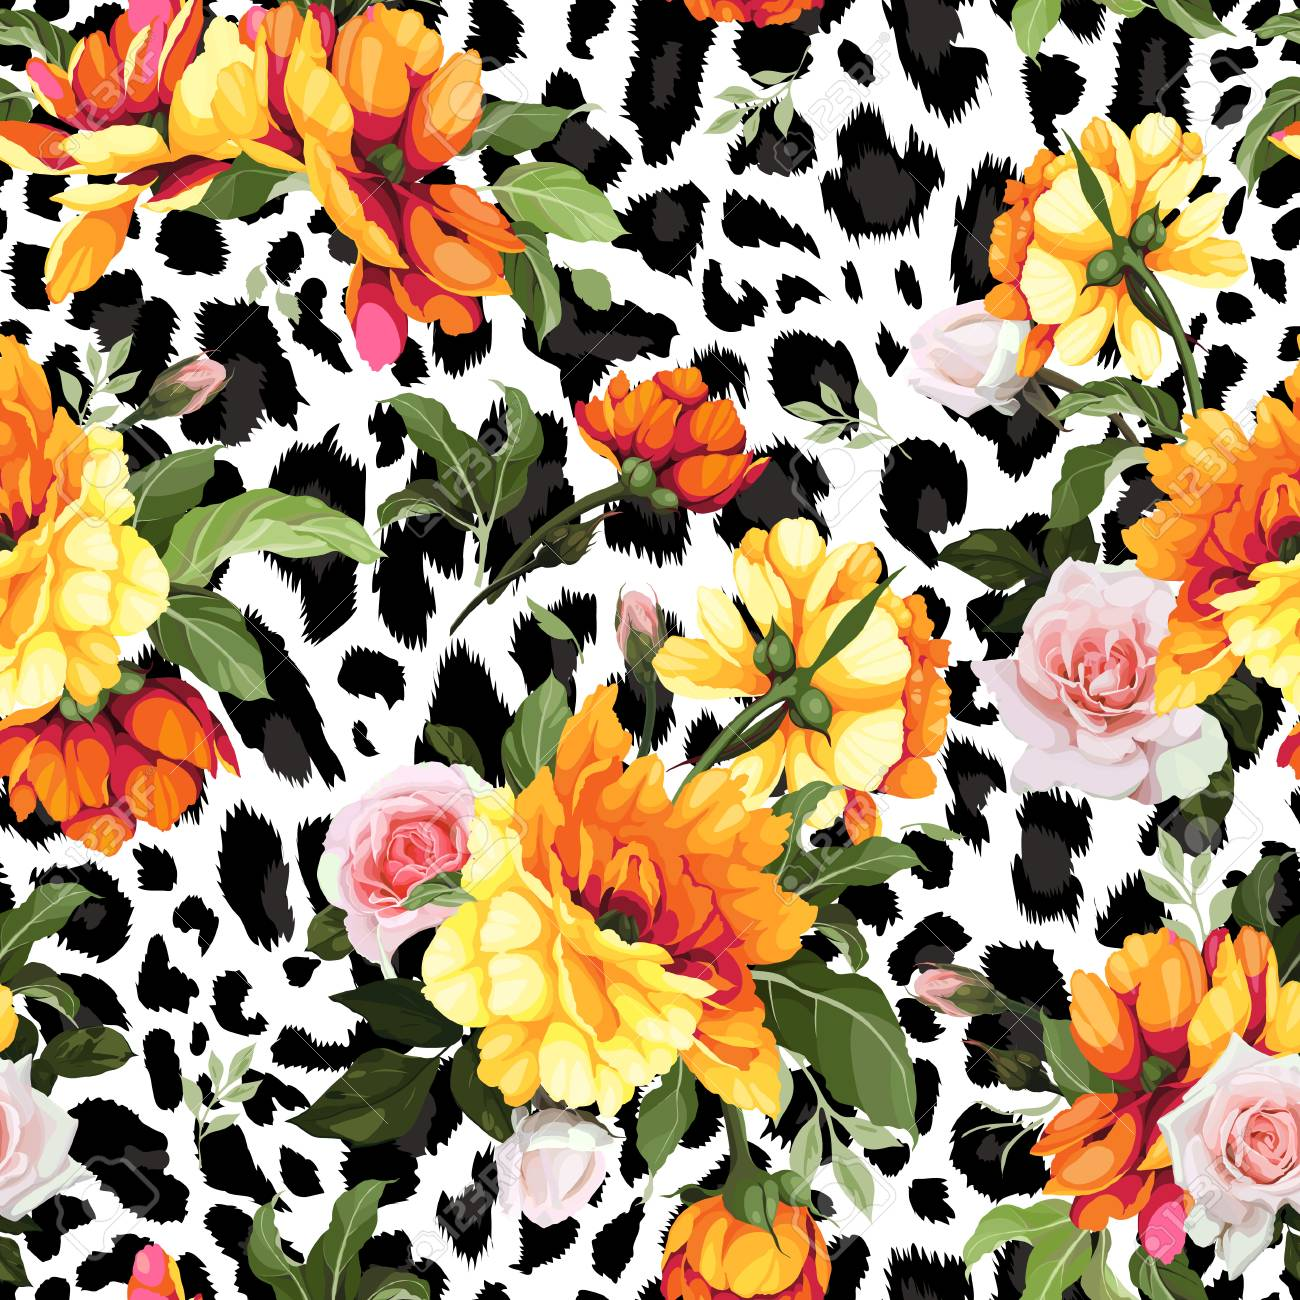 Seamless floral pattern with roses, watercolor. Vector illustration. - 97308102